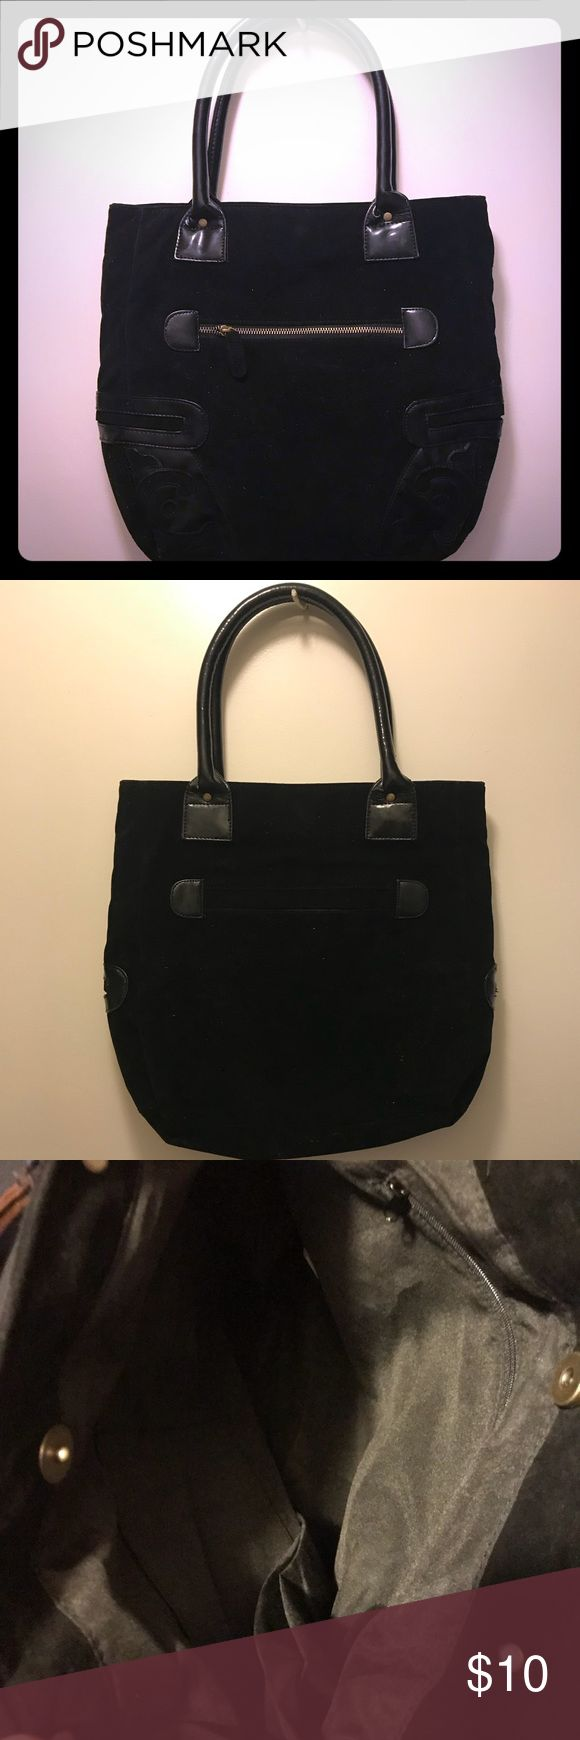 Avon Handbag Avon Black suede handbag. Gently used. 15 inches wide and 13 inches long. 4 outside pockets and 1 inside. Avon Bags